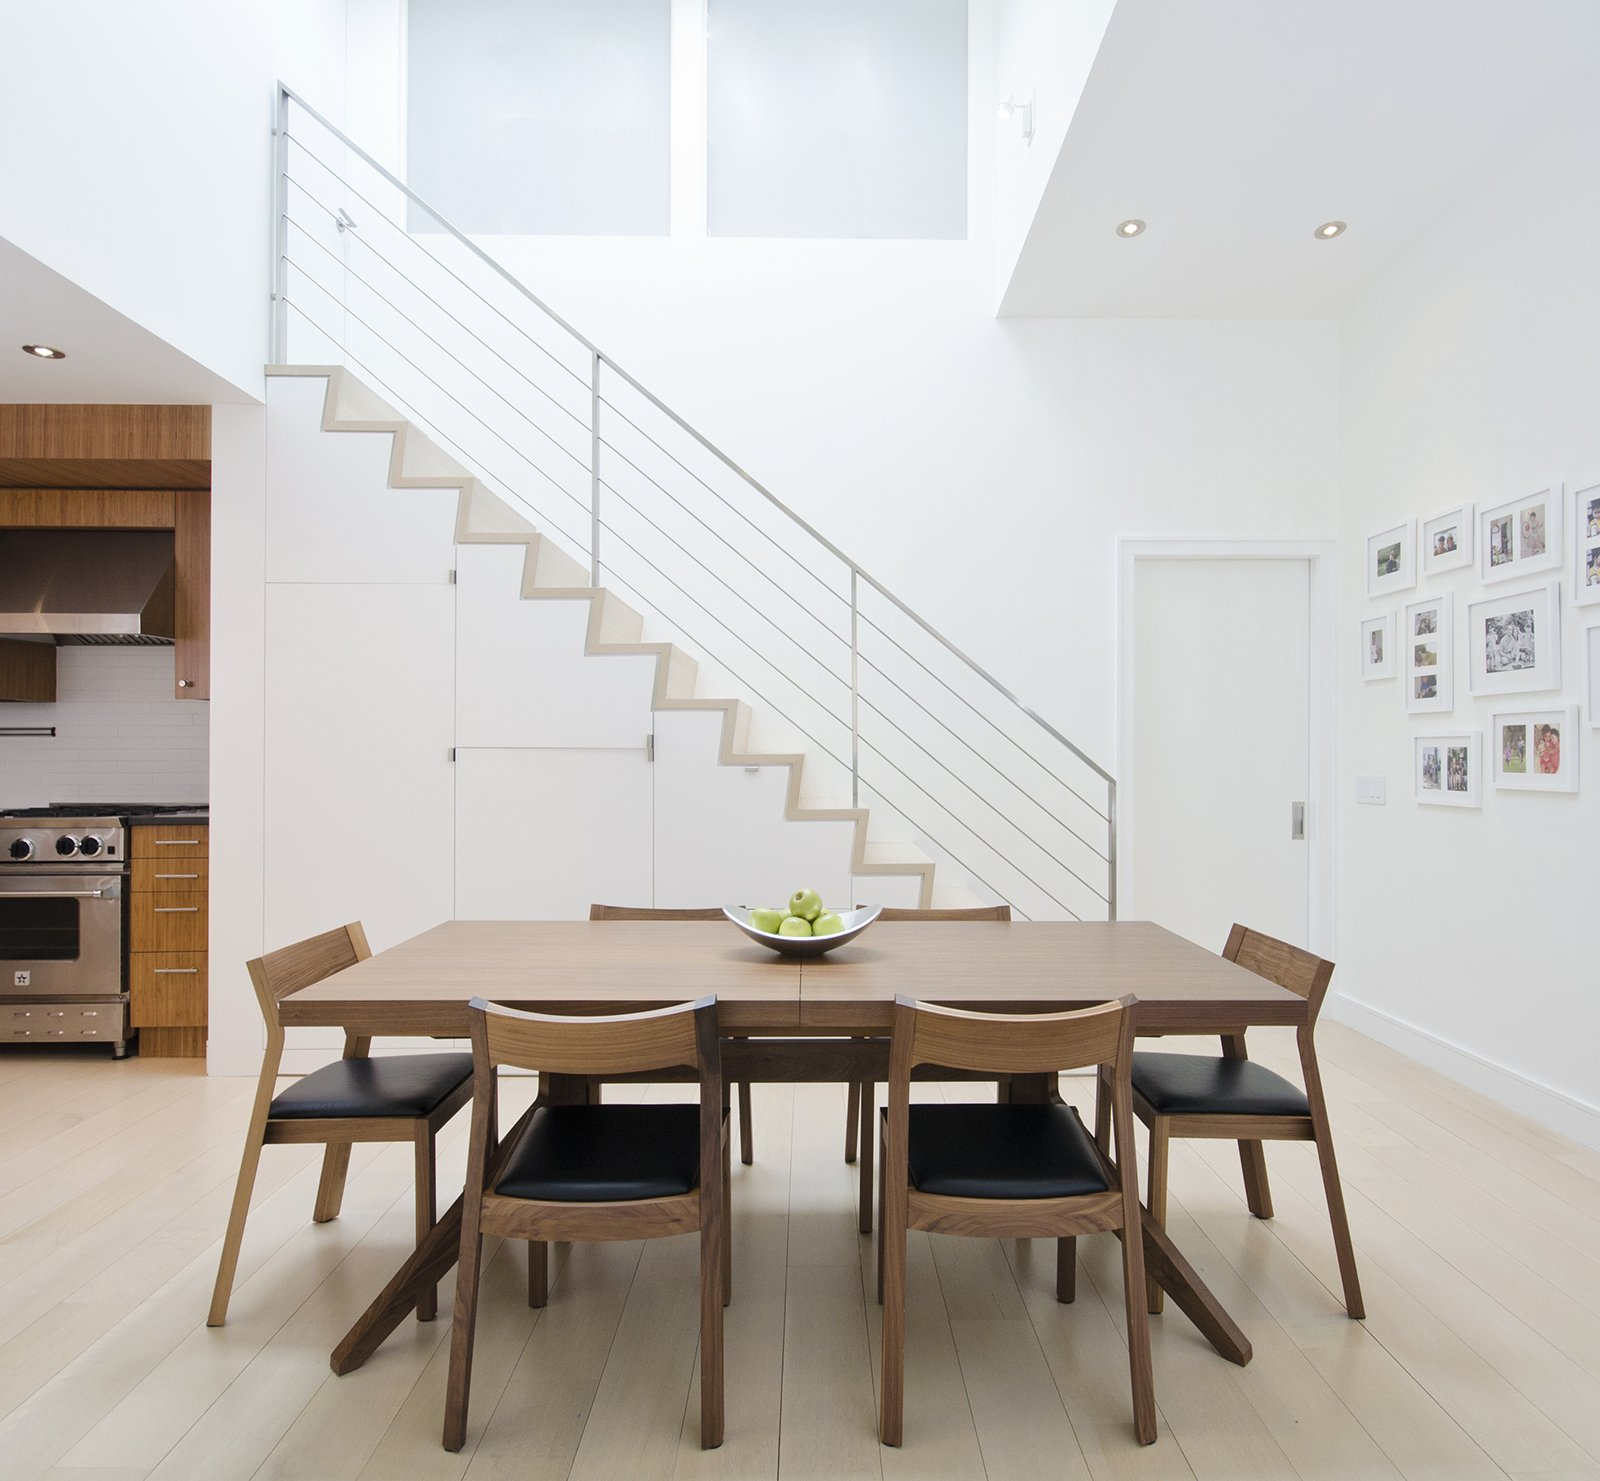 """""""We refaced some of the kitchen cabinets and altered the staircase a little bit,"""" Miller says. The new staircase features a design that accommodates storage for a microwave and pantry items. A warm wood dining table by Matthew Hilton and Profile chairs from Design Within Reach stand out against the white walls and pale flooring.  A Renovated Tribeca Loft with a Modern Aesthetic by Monique Valeris"""